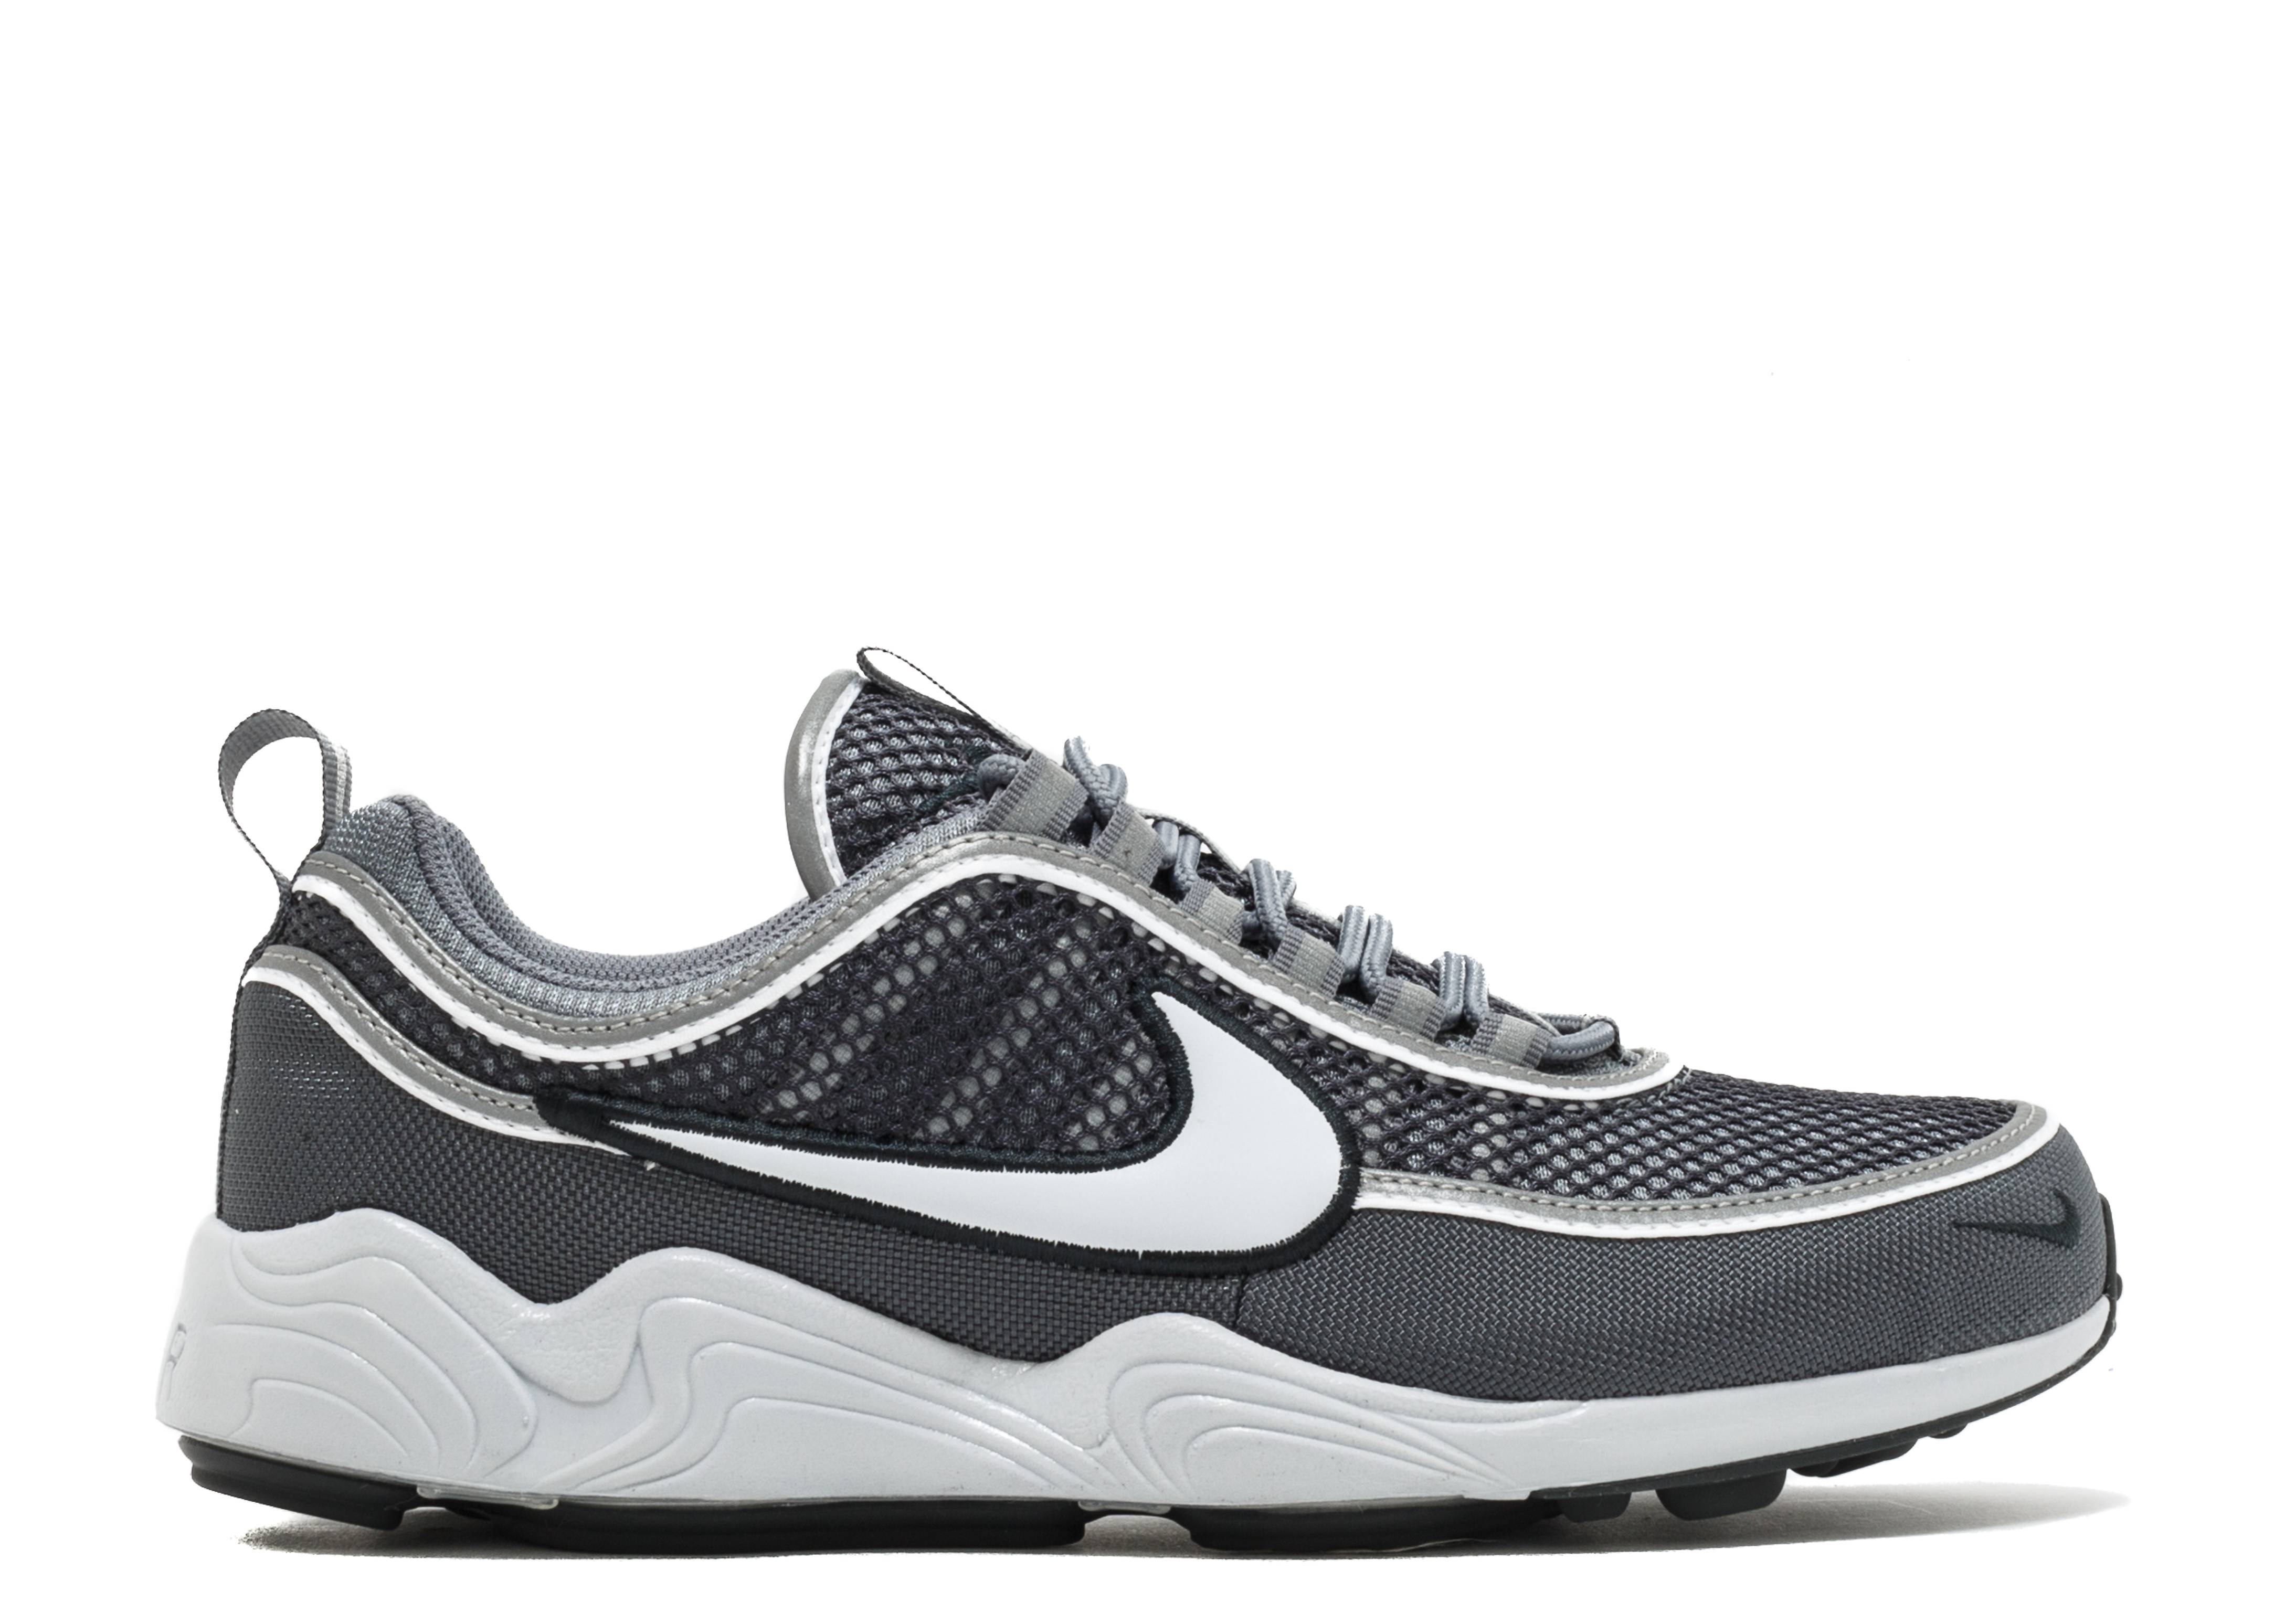 Nike Air Zoom Spiridon 16 SE - 4049P